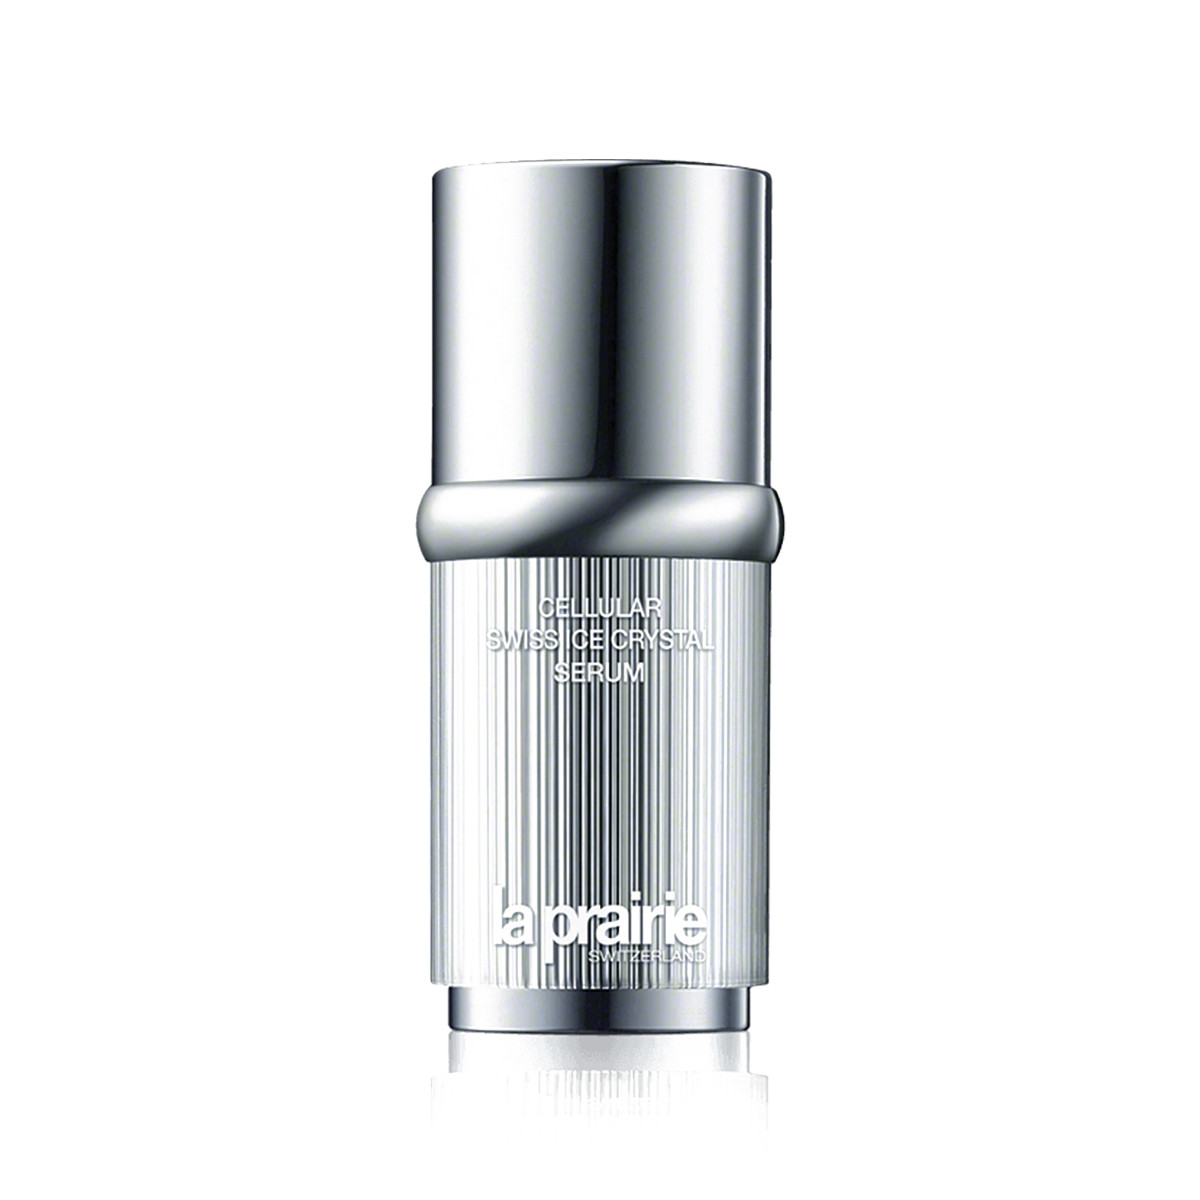 la prairie cellular swiss ice crystal serum 30ml unineed. Black Bedroom Furniture Sets. Home Design Ideas